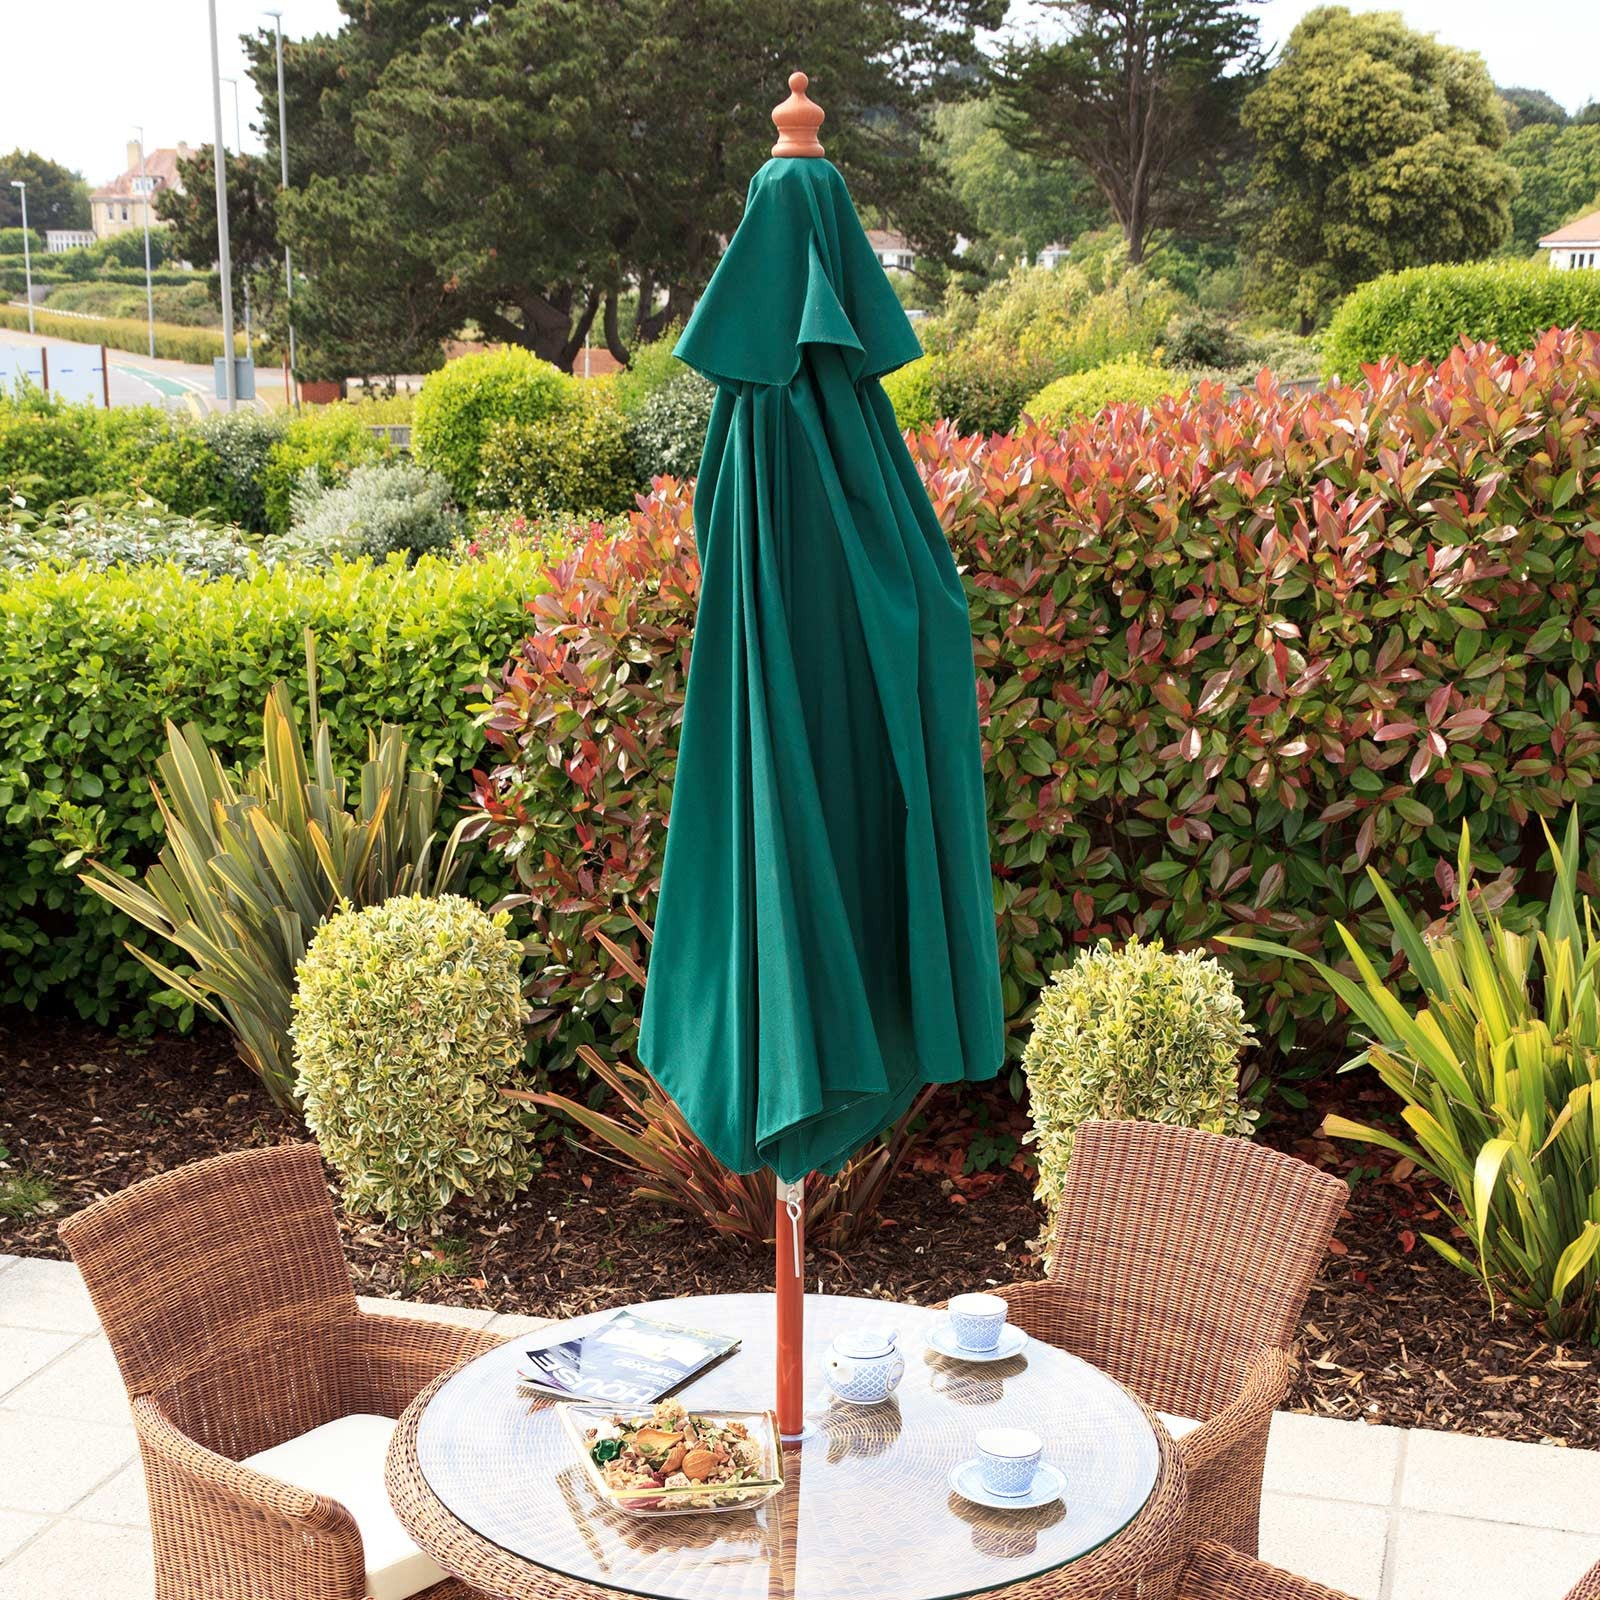 Cozy Bay 3.5m Round Wooden Pulley Parasol - Green